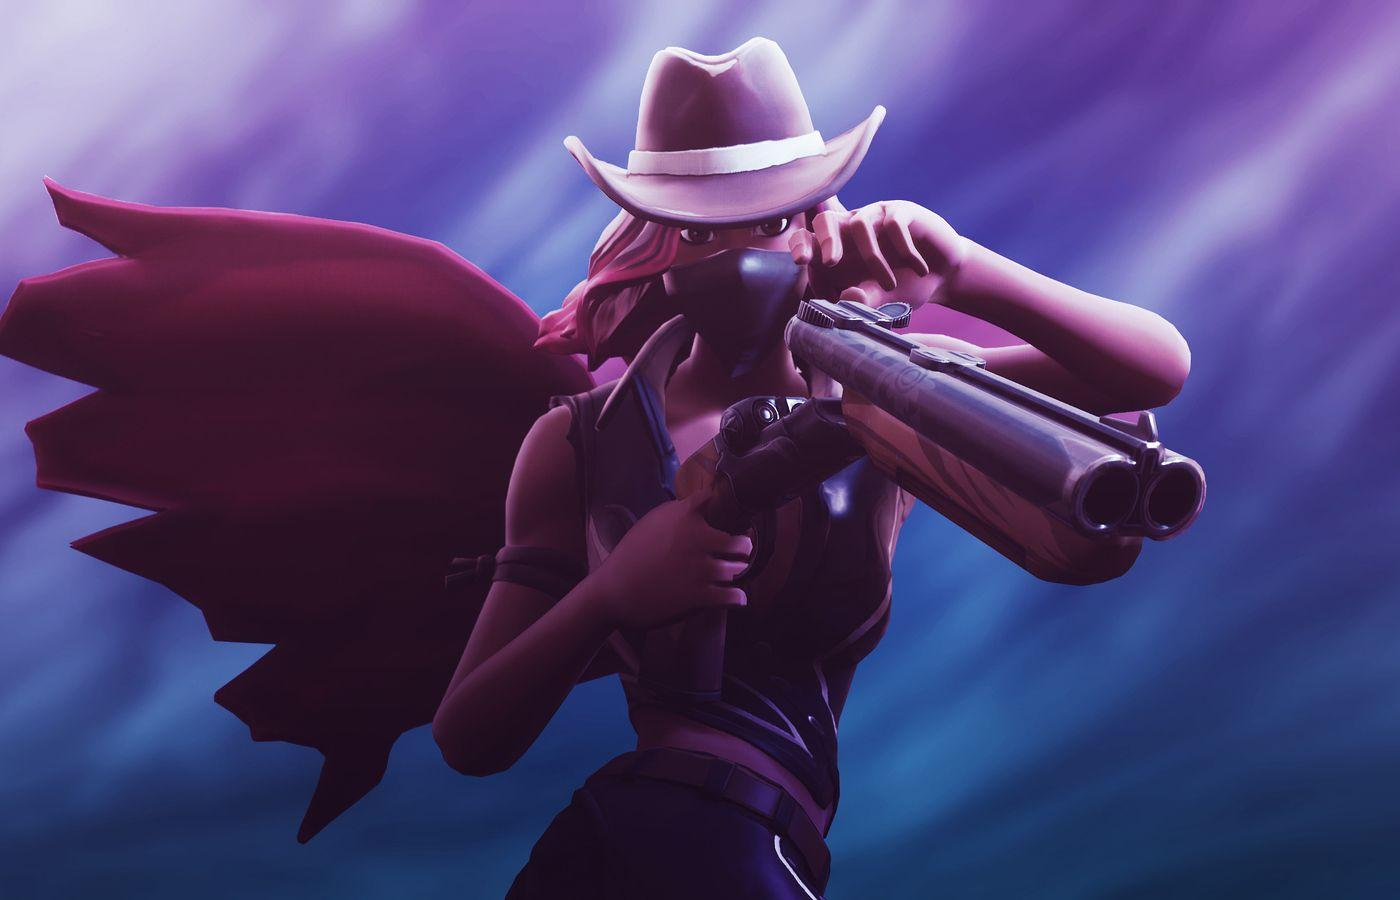 1400x900 Calamity Fortnite Season 6 4K 2018 1400x900 Resolution HD ...